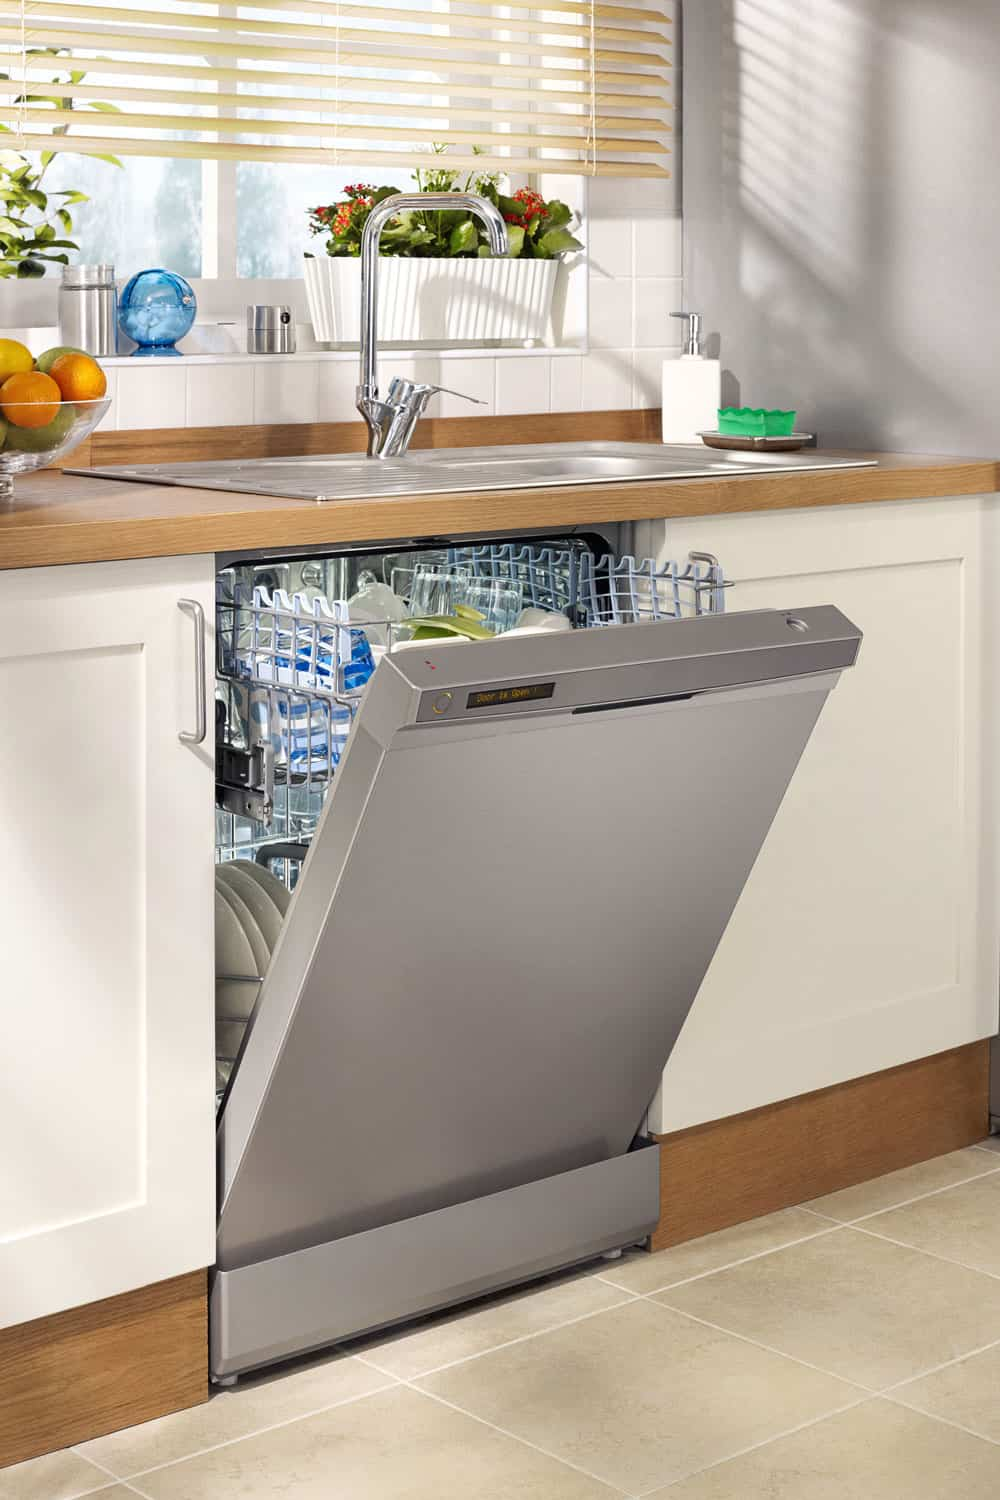 How many amps does a dishwasher use? | DIY Home